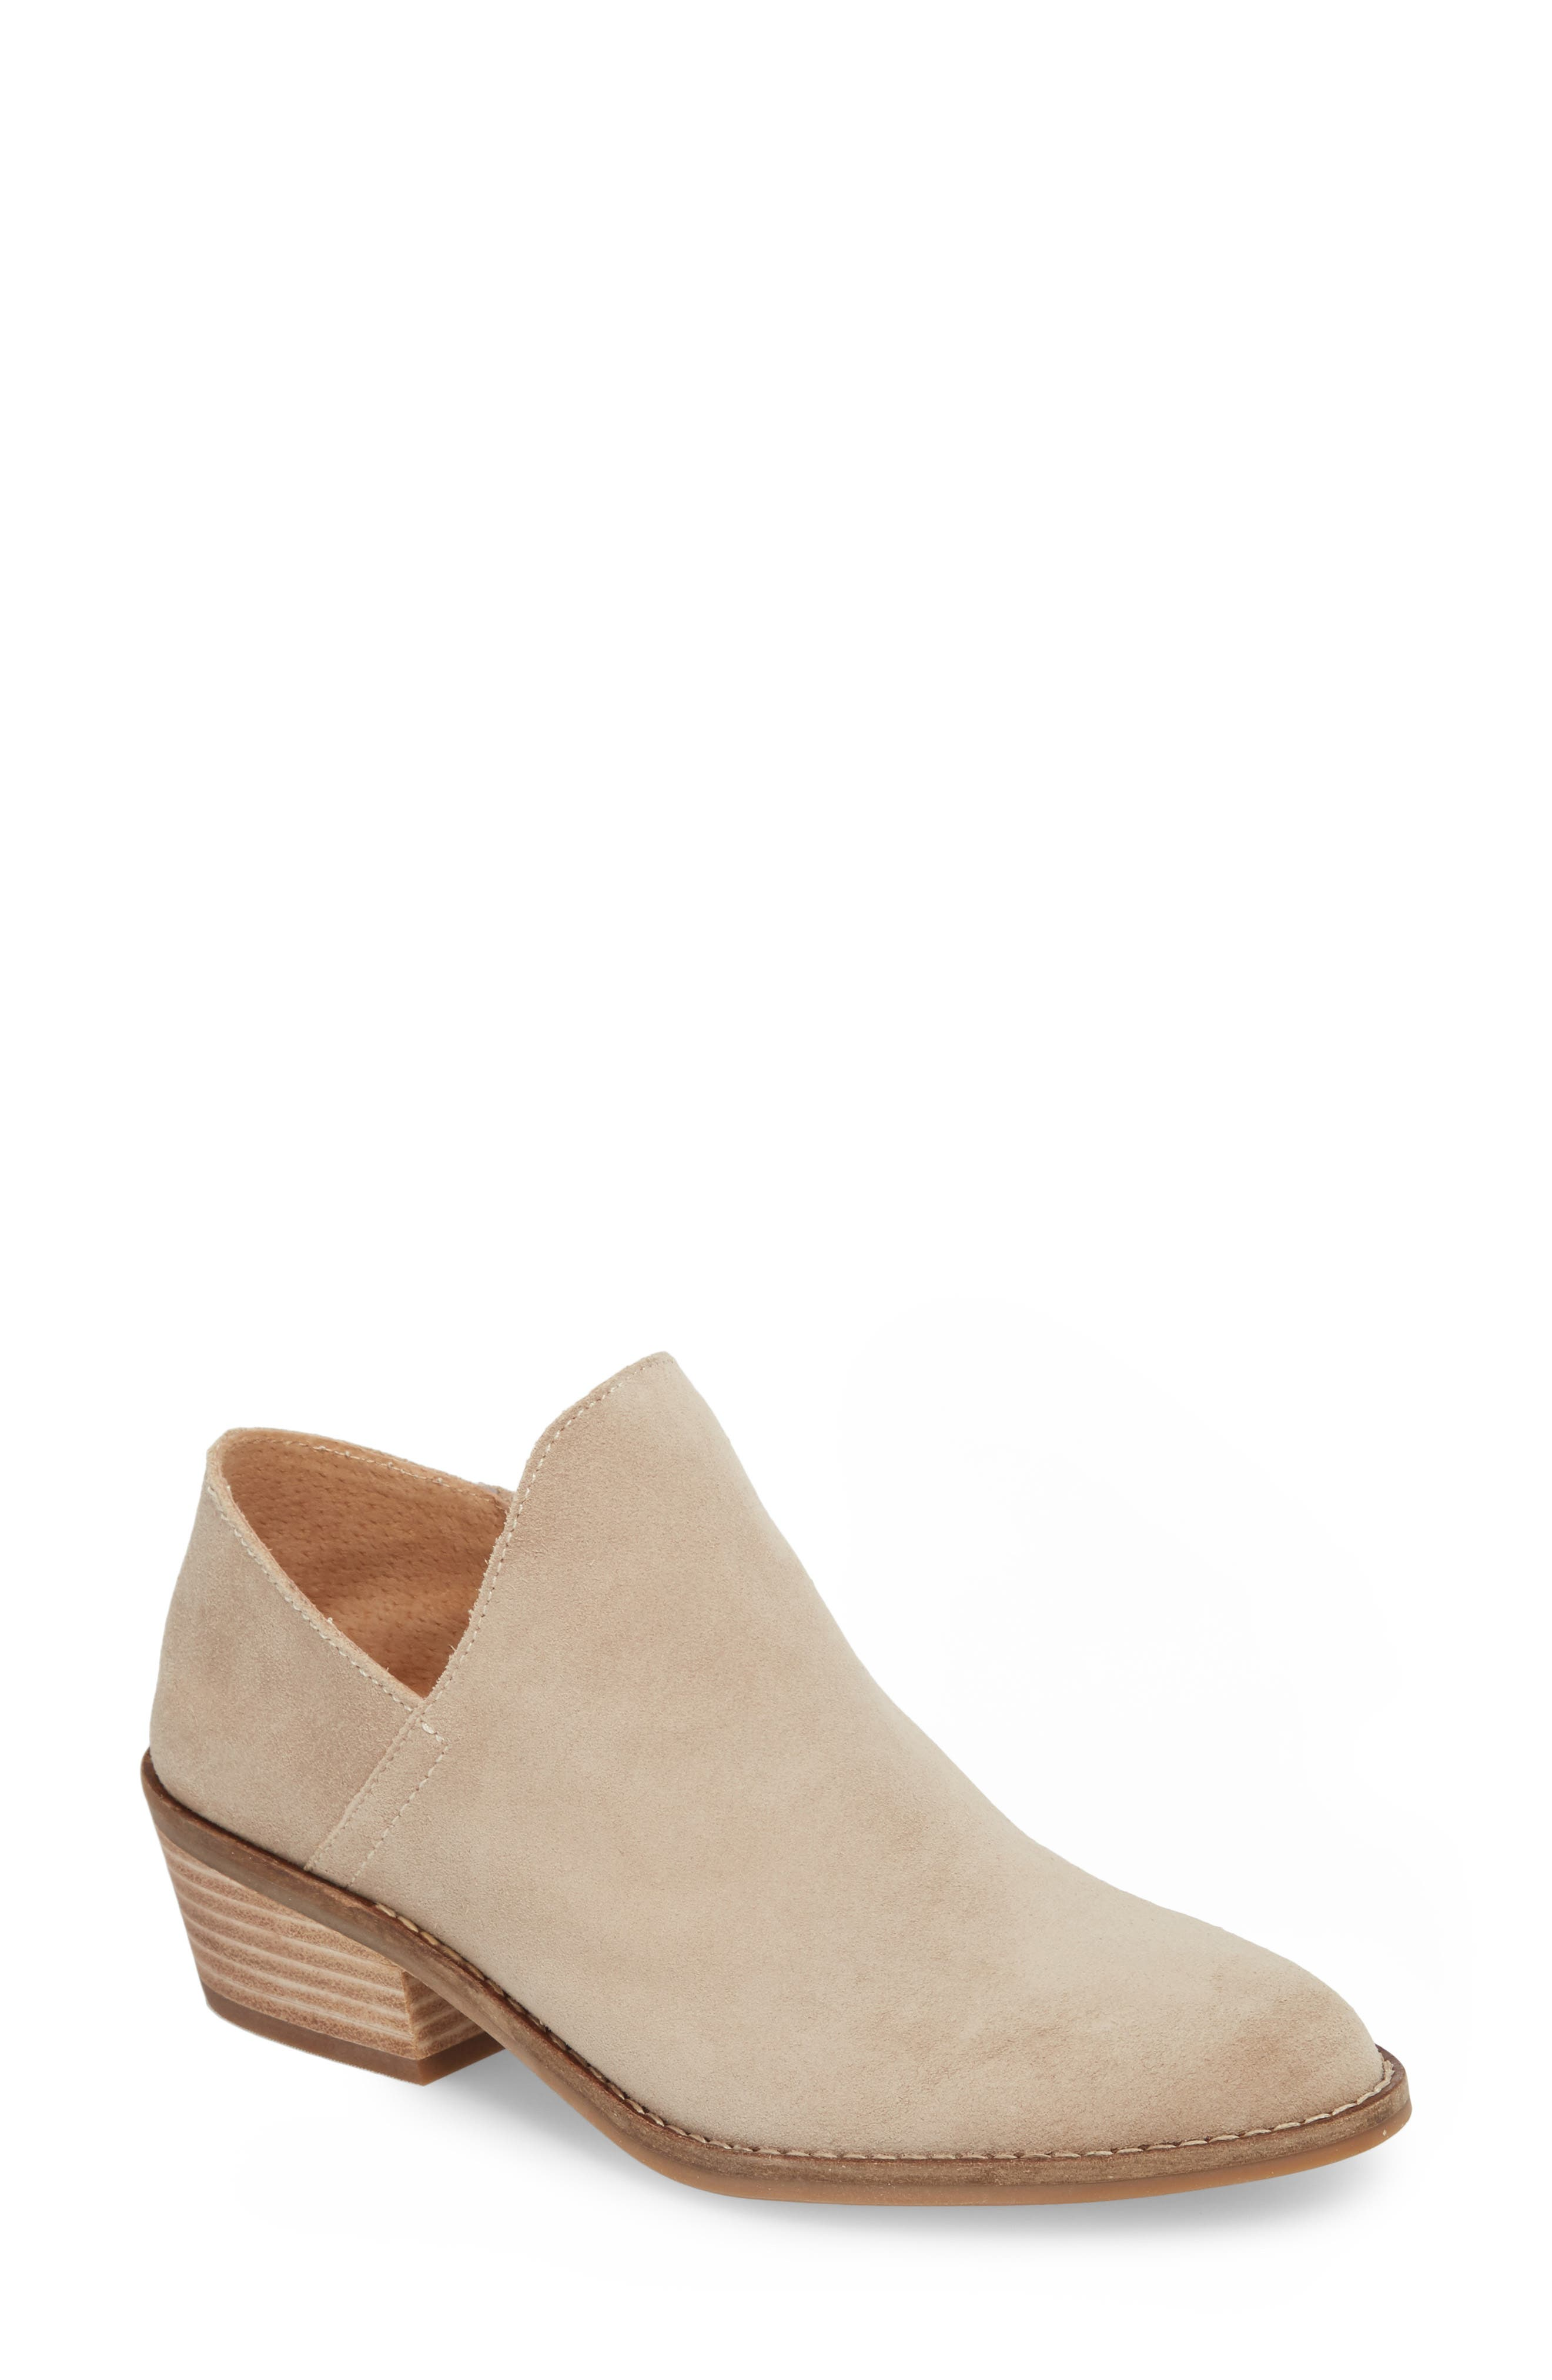 Fausst Bootie,                             Main thumbnail 1, color,                             Mushroom Suede